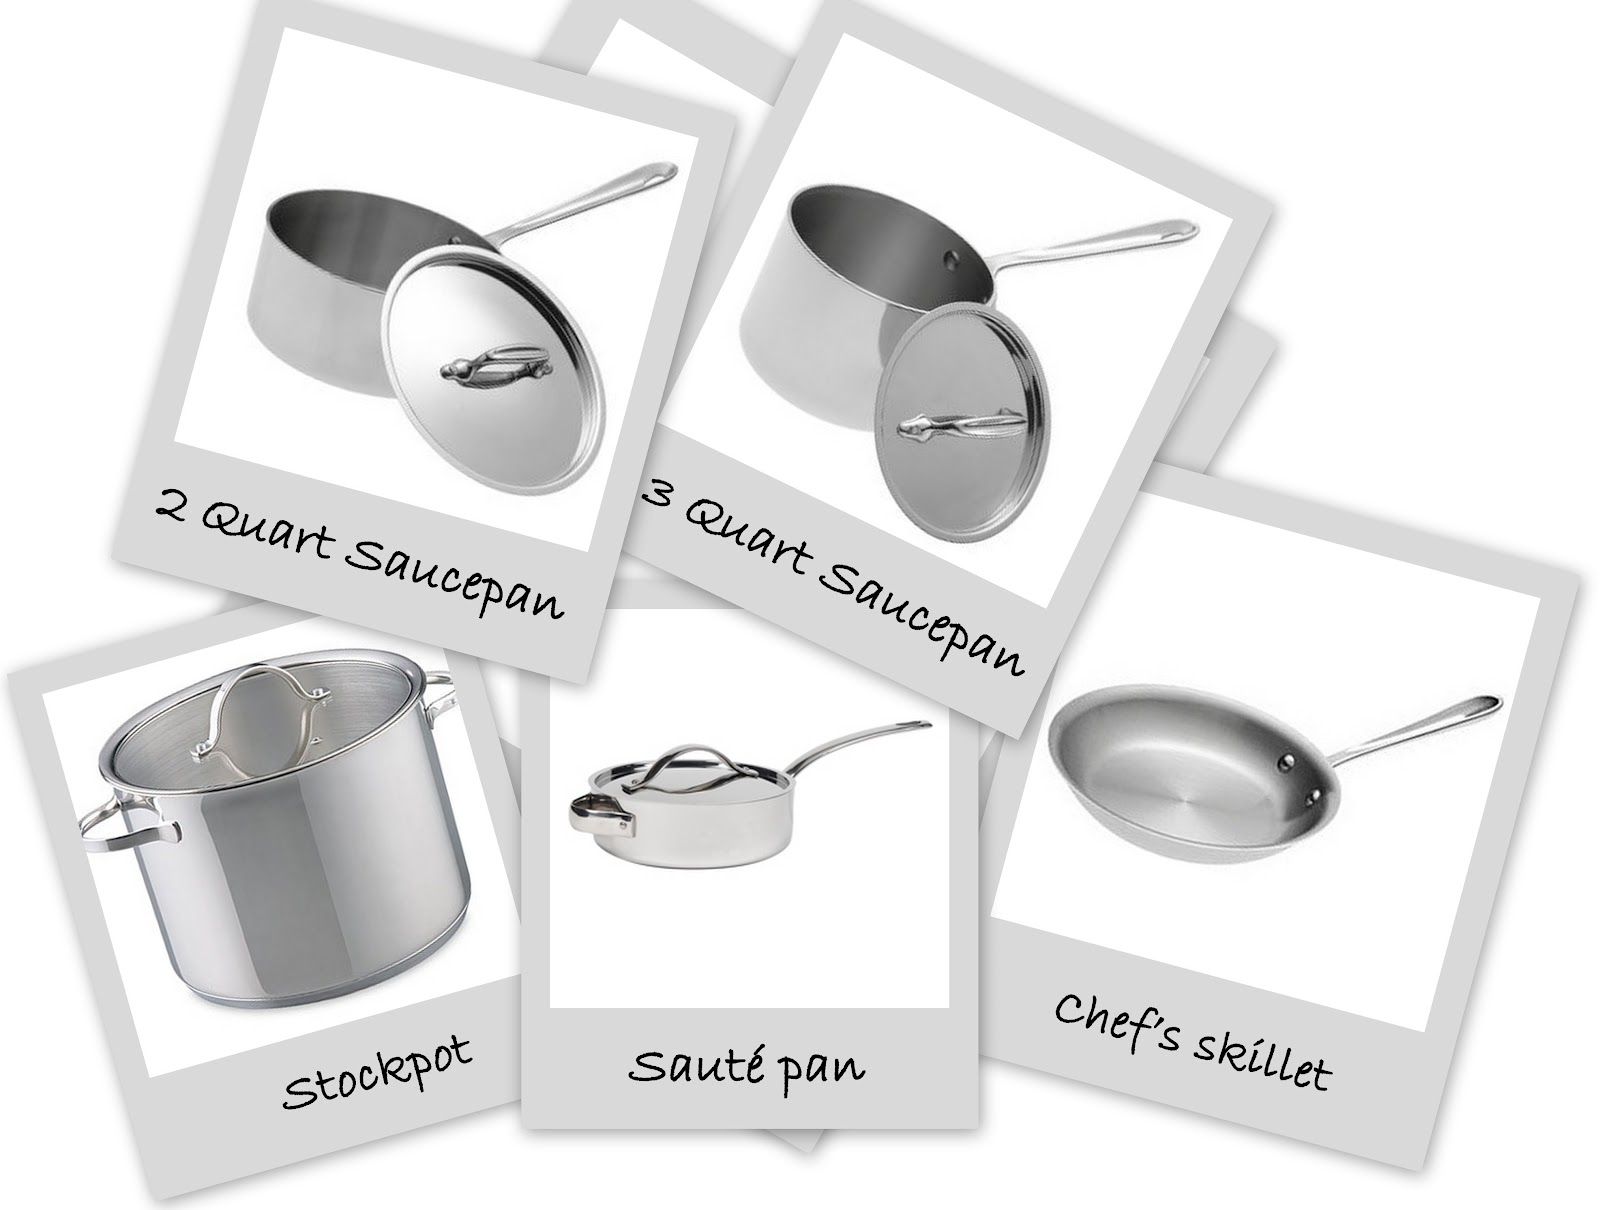 There - Pictures Of Different Kinds Of Tools And Equipment In Baking's a fly in my soup!: Basic to Advanced Cooking Equipment